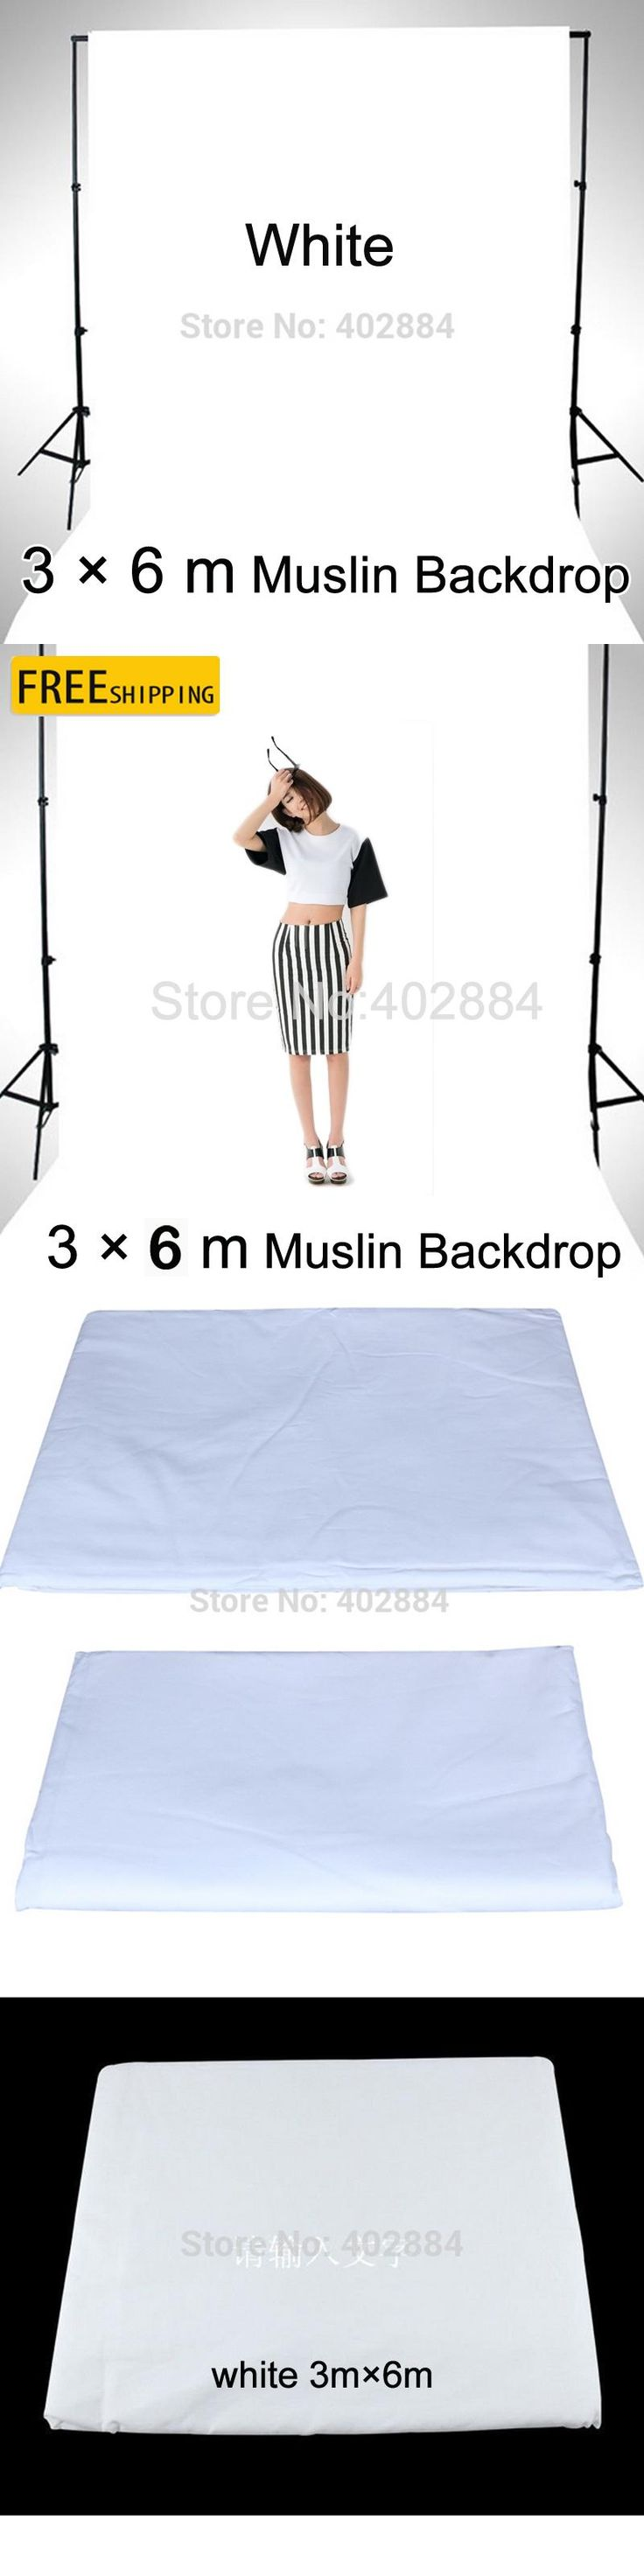 Free tax to Russia new photographic equipment Diamond Cloth Background Backdrop New - 3*6m muslin backdrop white Fast Shipping